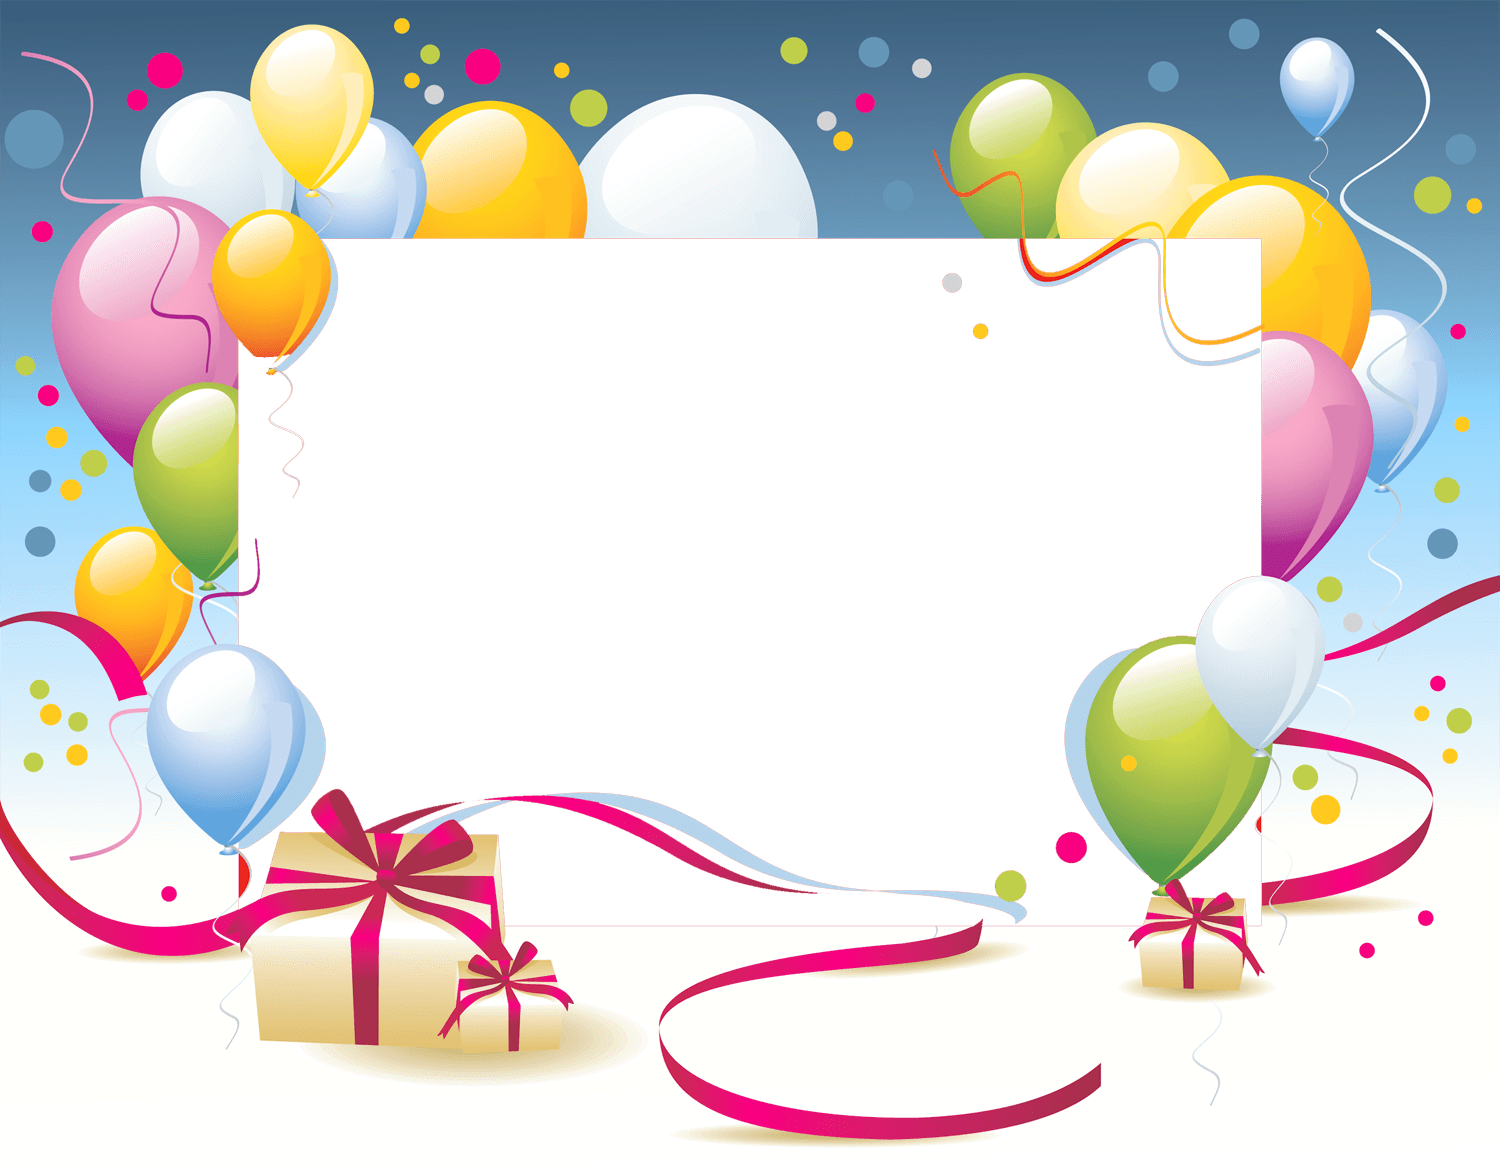 Happy birthday background png. Card template transparent stickpng